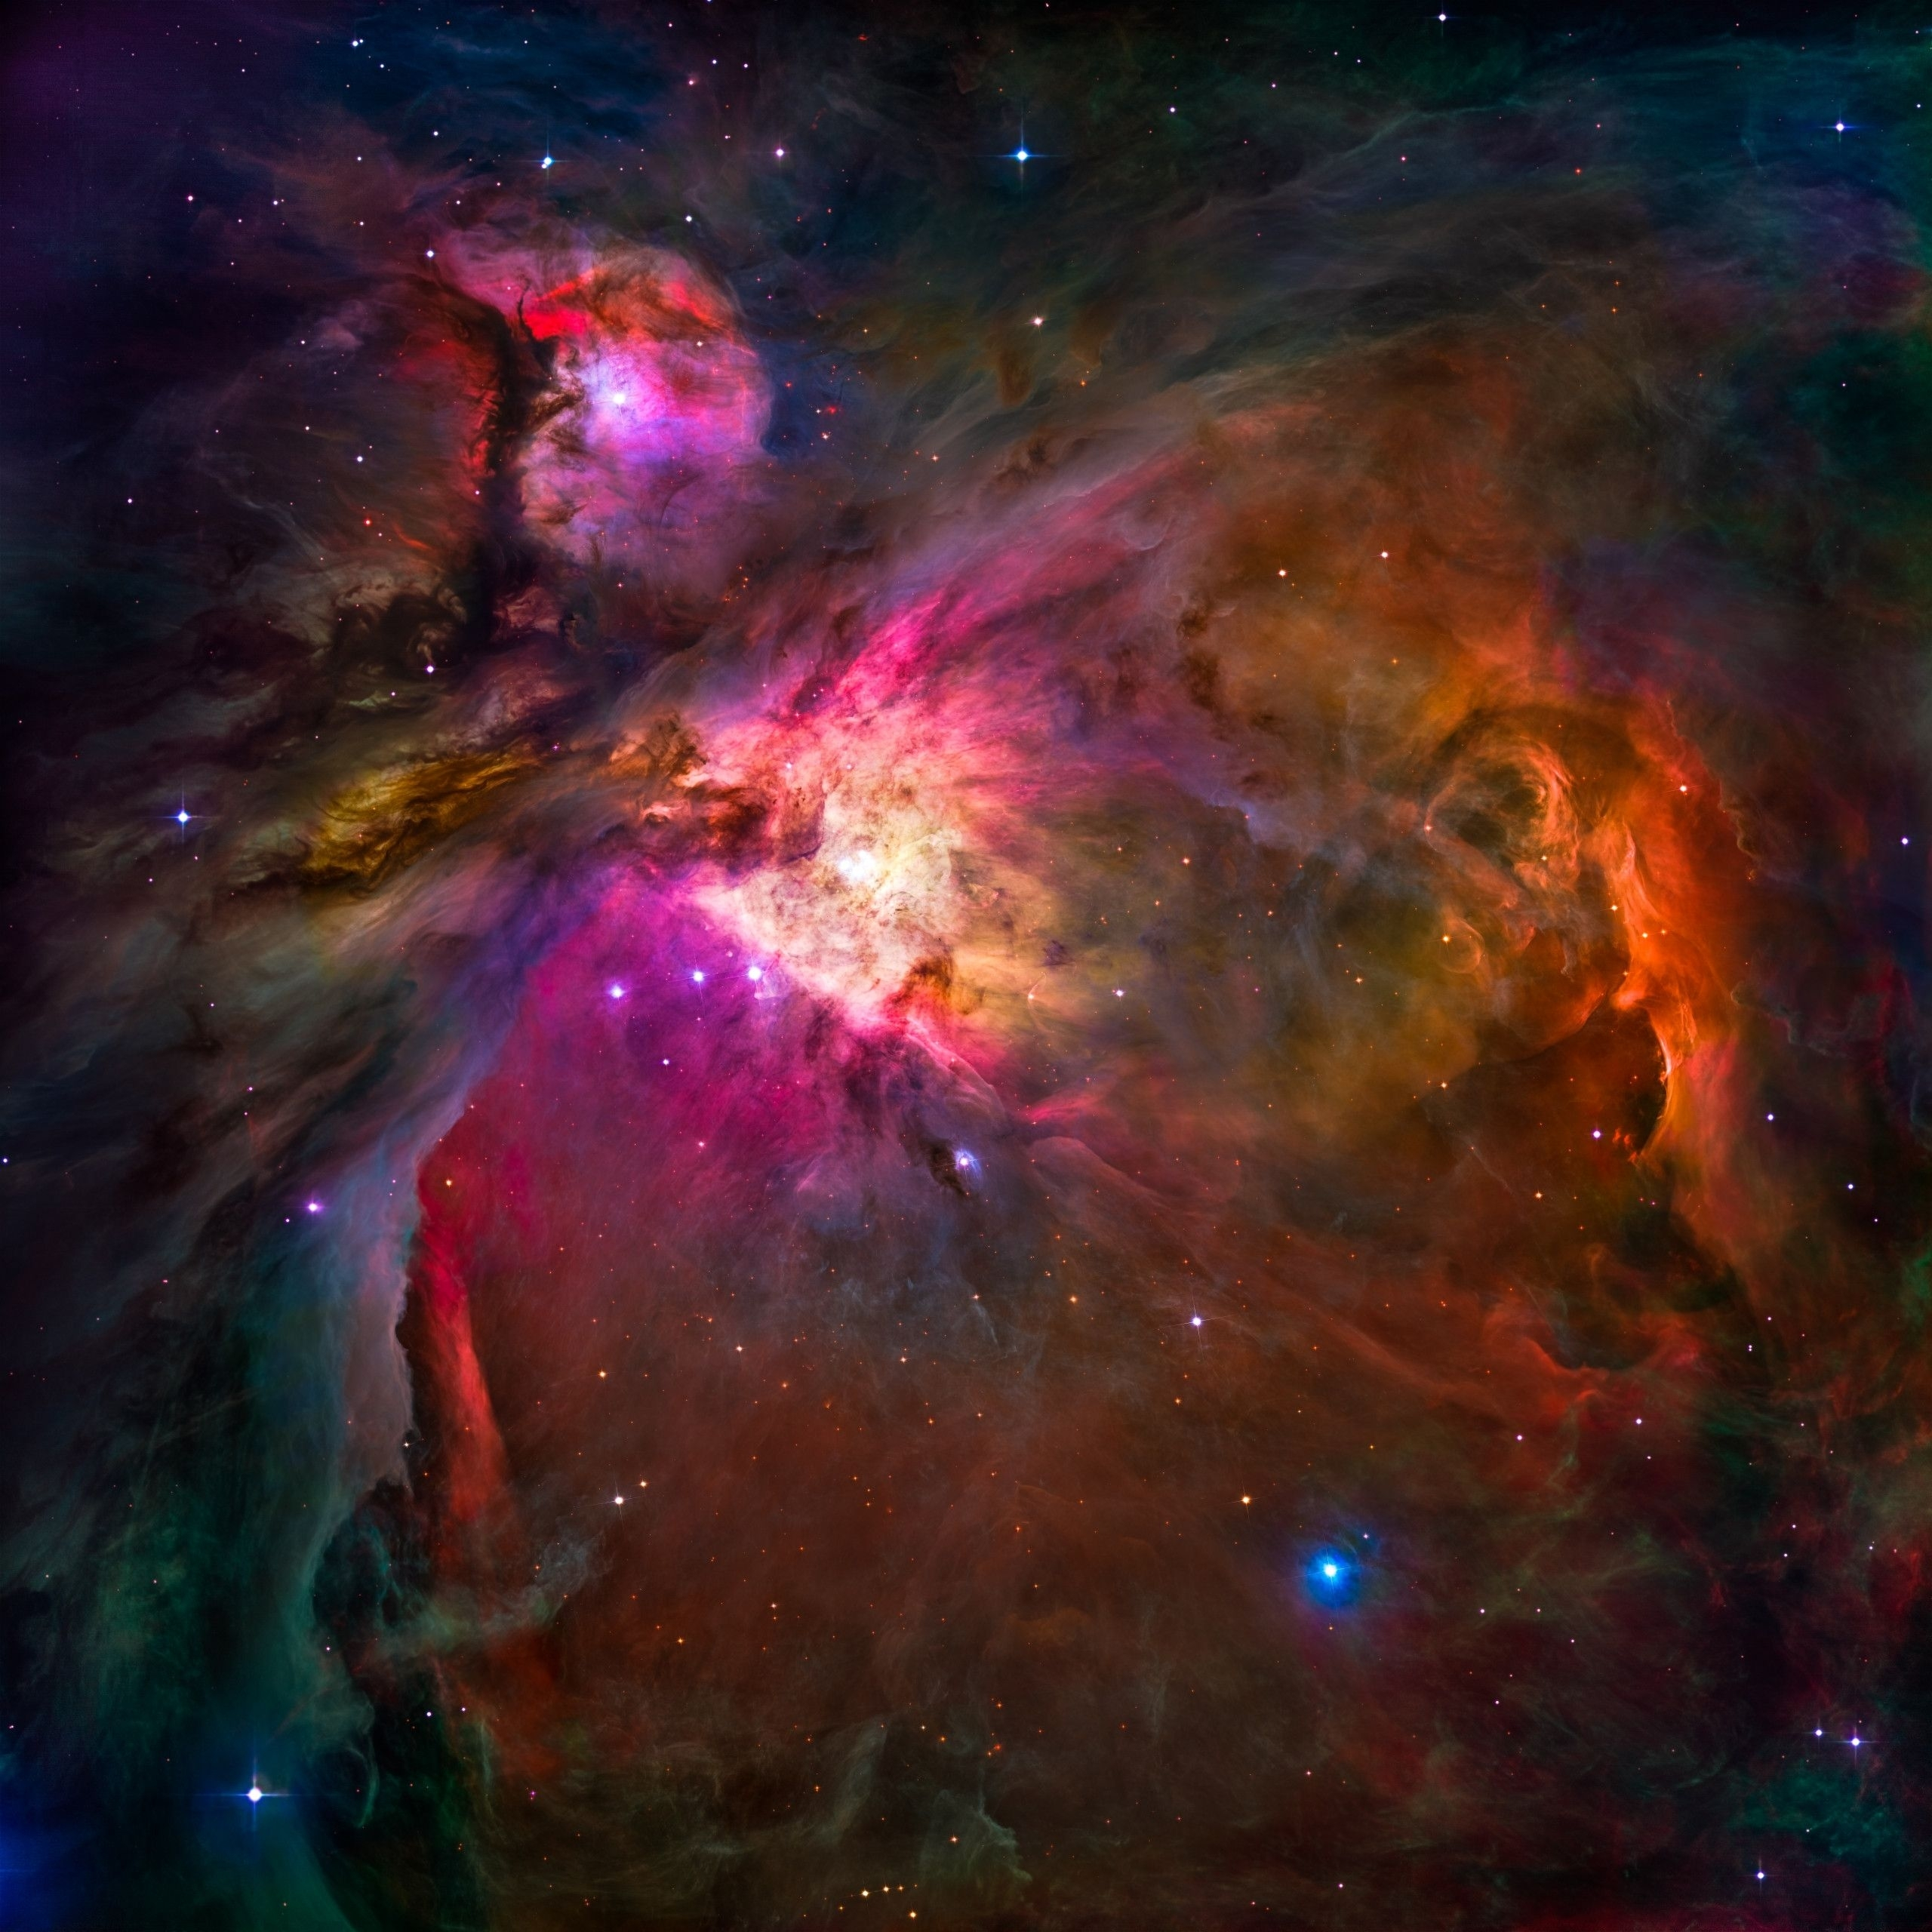 astronomy: hubble's orion #nebula, with a bit of vibrancy and shadow